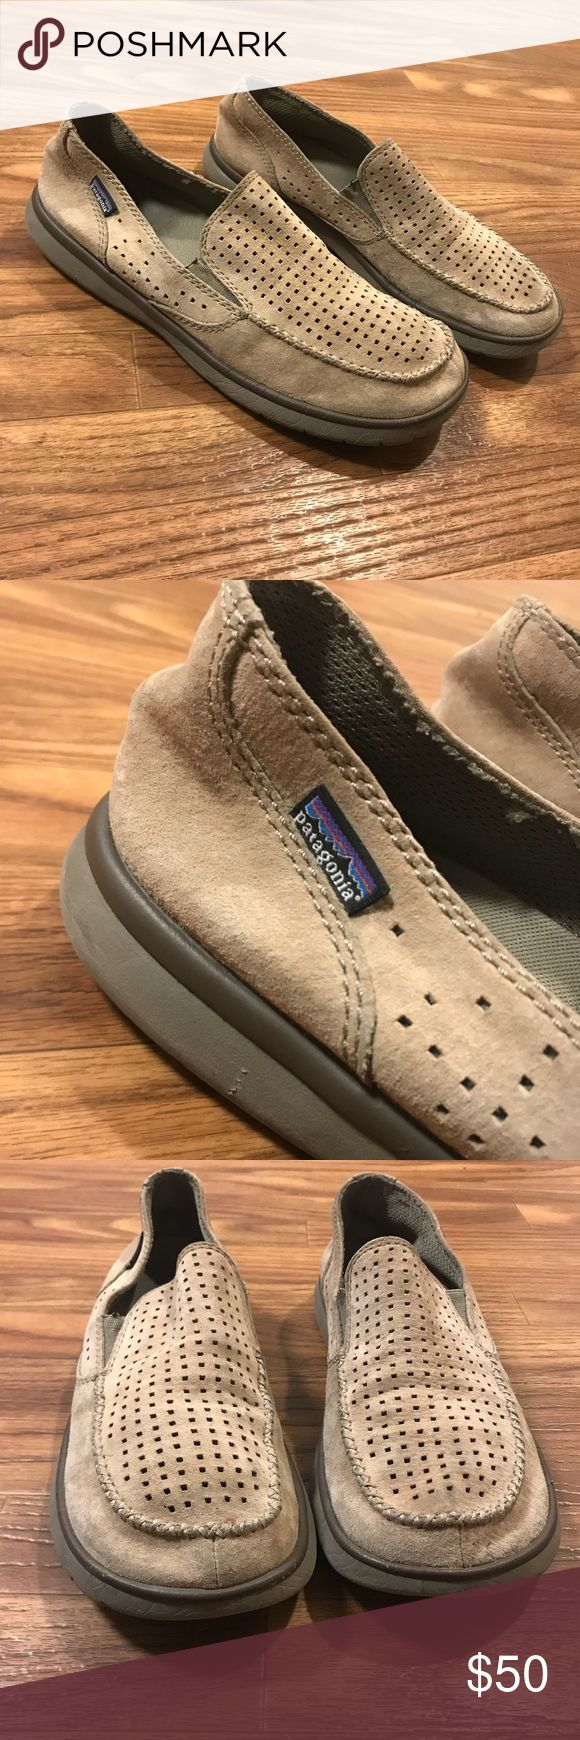 Patagonia Maui Air slip ons Used  In good conditions  Pet and smoke free home  Ventilated pigskin leather  This shoe has been retired  Extremely comfortable and breathable Patagonia Shoes Loafers & Slip-Ons